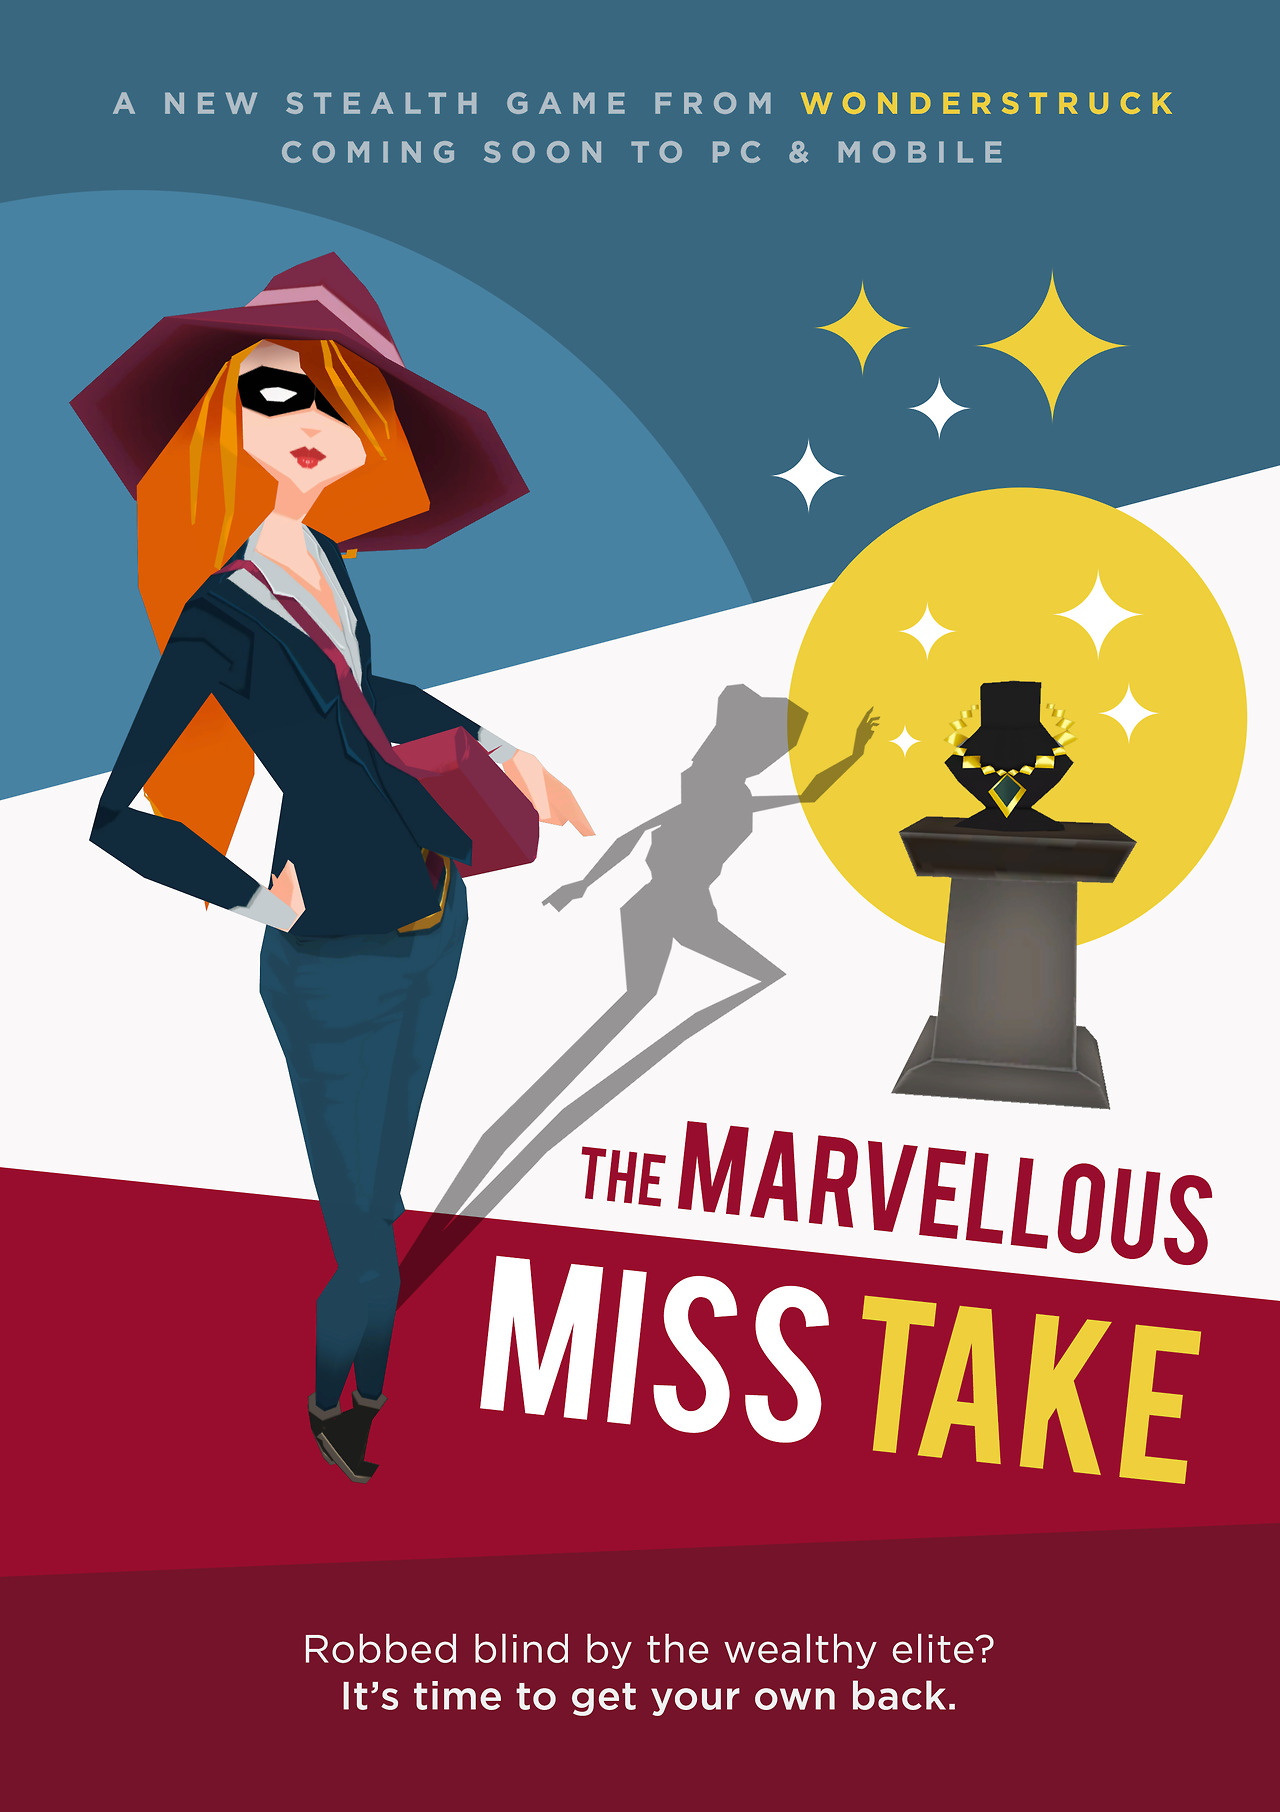 """The Marvelous Miss Take:"" First Impressions - Stealth, Steal, Enjoy"